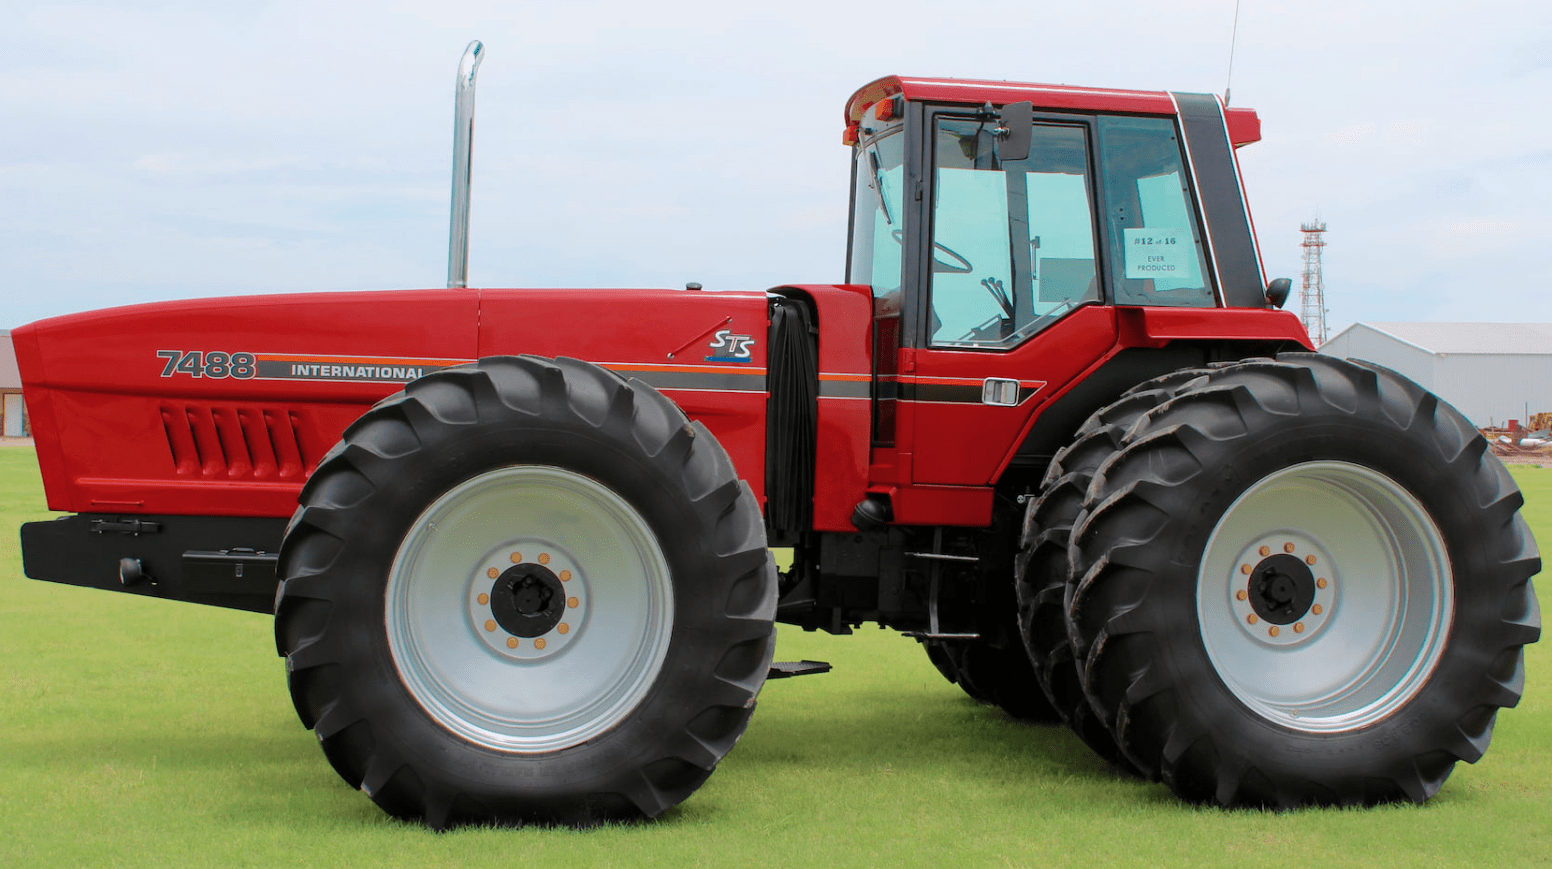 International Harvester 7488